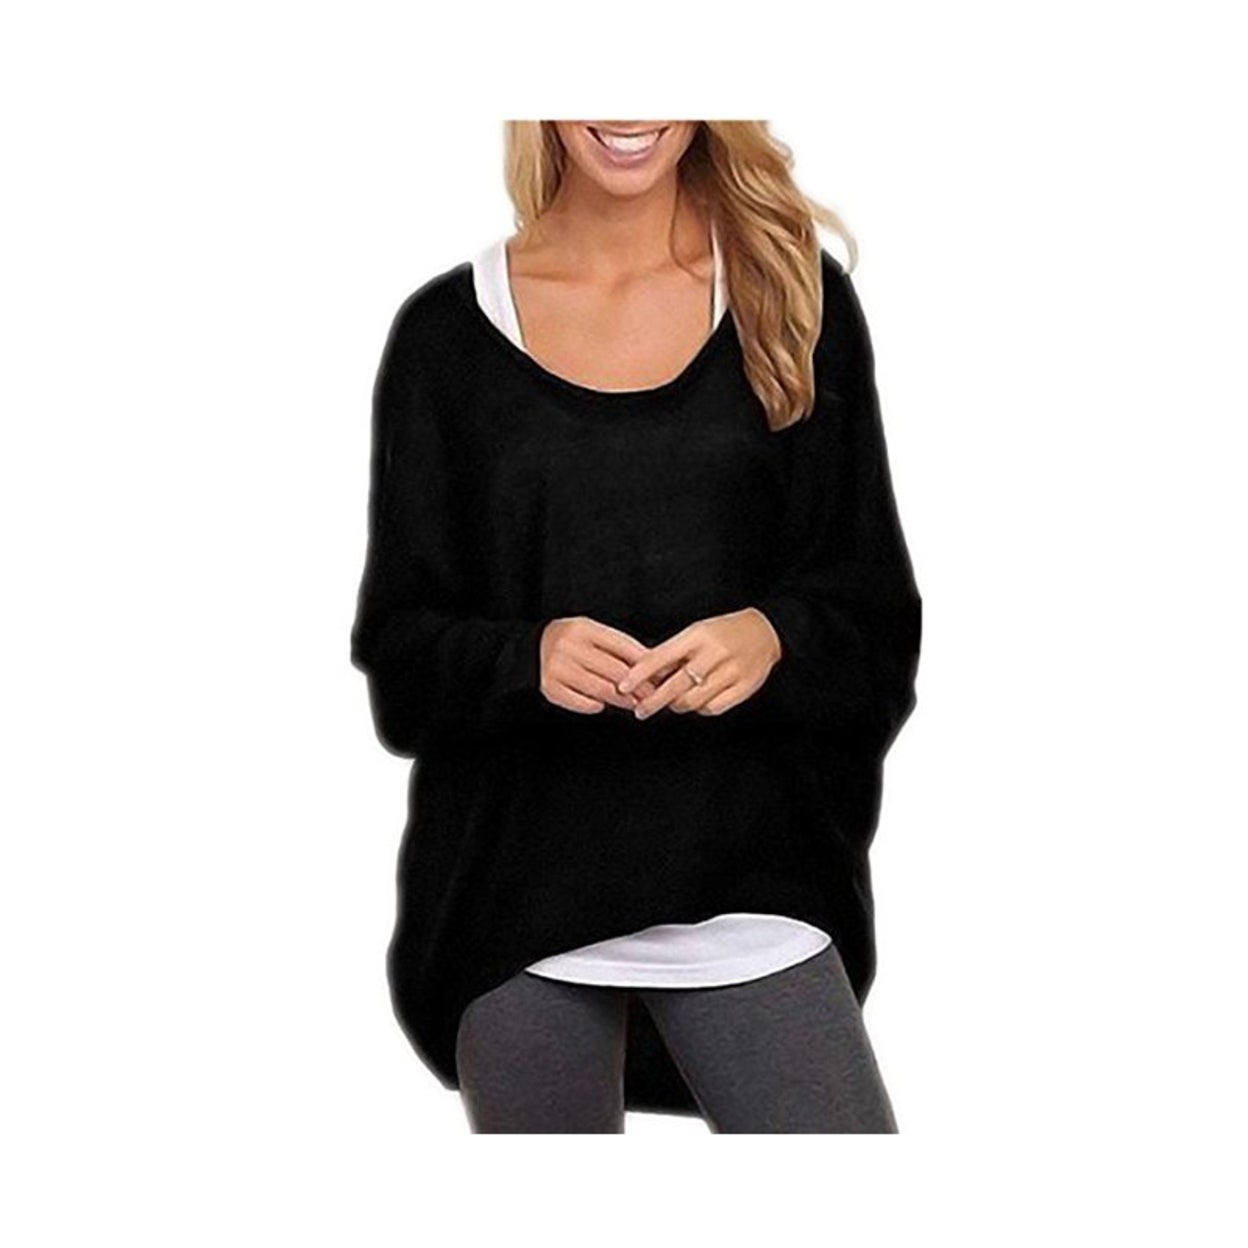 30d0f823392359 Shop Women's Sexy Long Batwing Sleeve Loose Pullover Casual Top Blouse T- Shirt - Free Shipping On Orders Over $45 - Overstock - 22804516